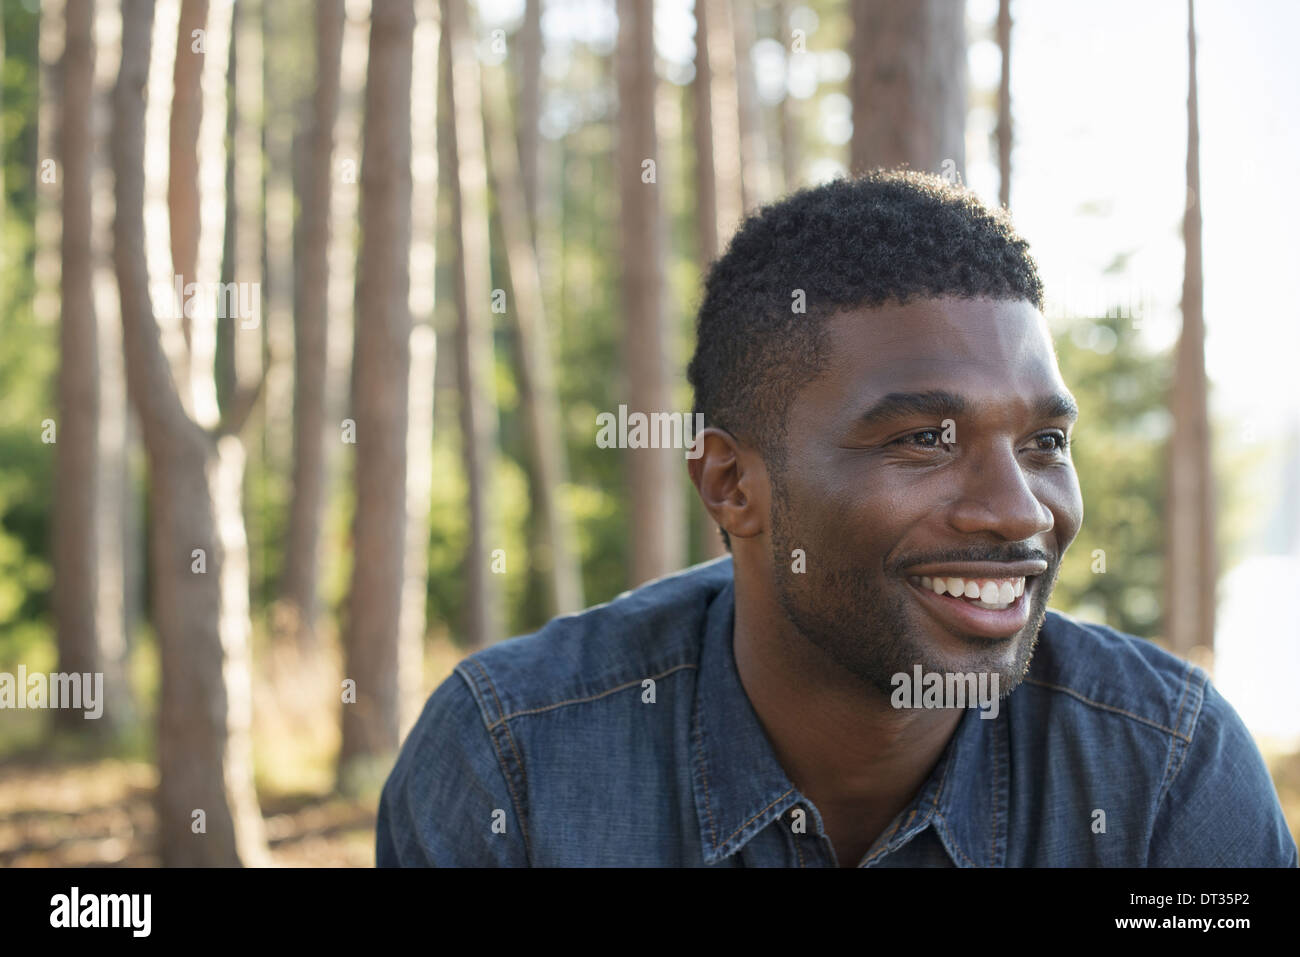 A man in a blue shirt in the shade of the trees - Stock Image